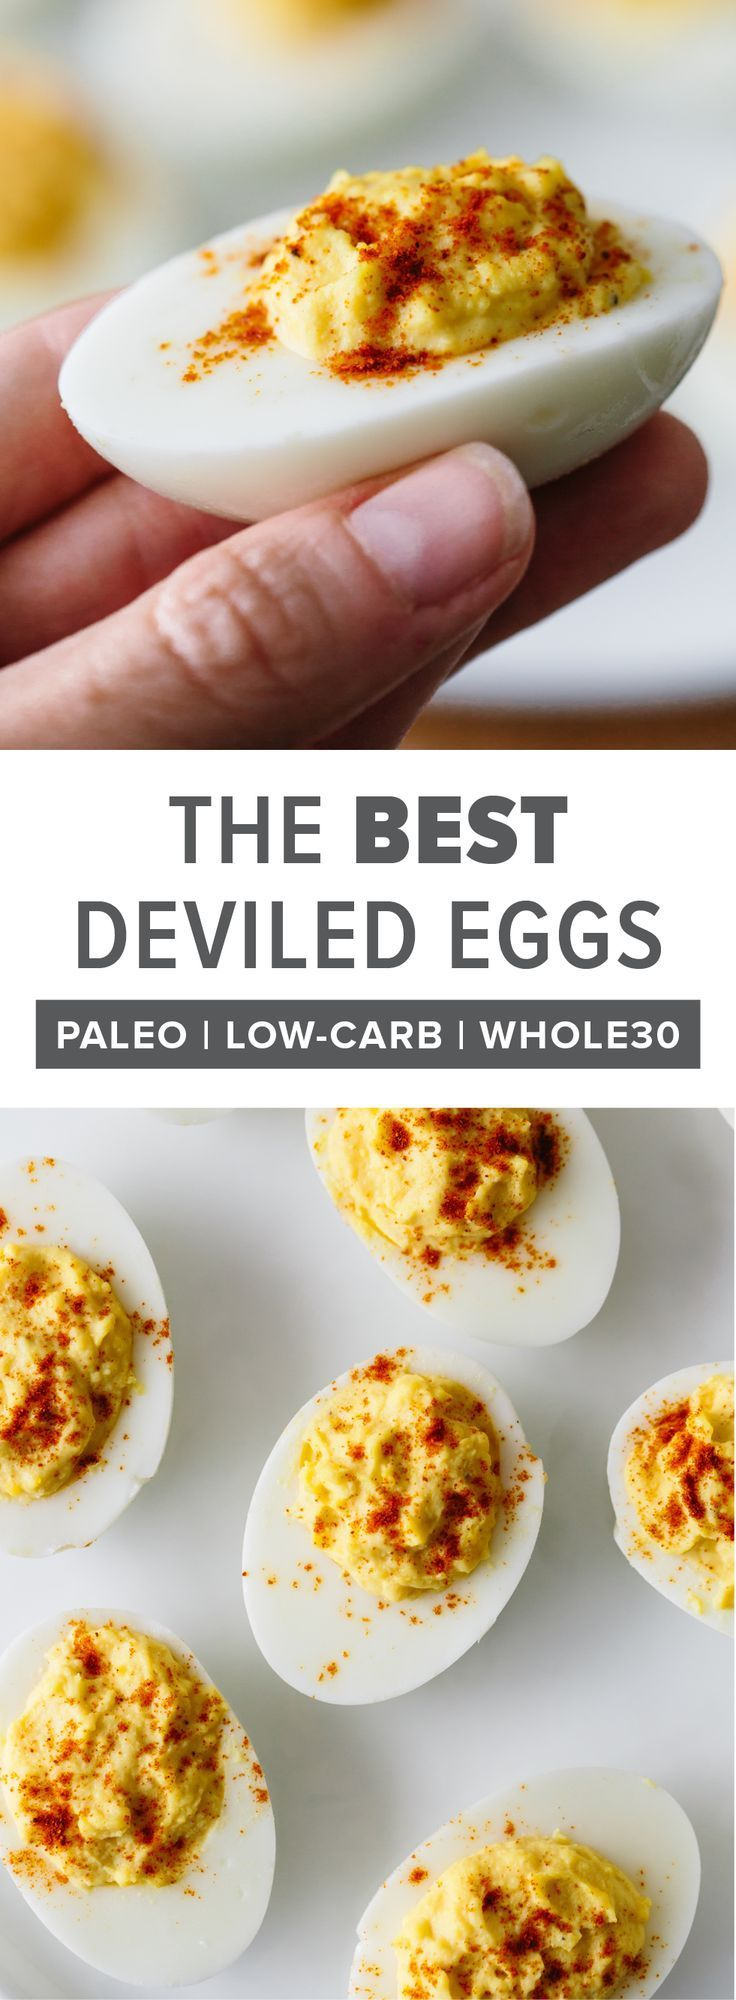 BEST Deviled Eggs Recipe - How to Make Deviled Eggs | Downshiftology